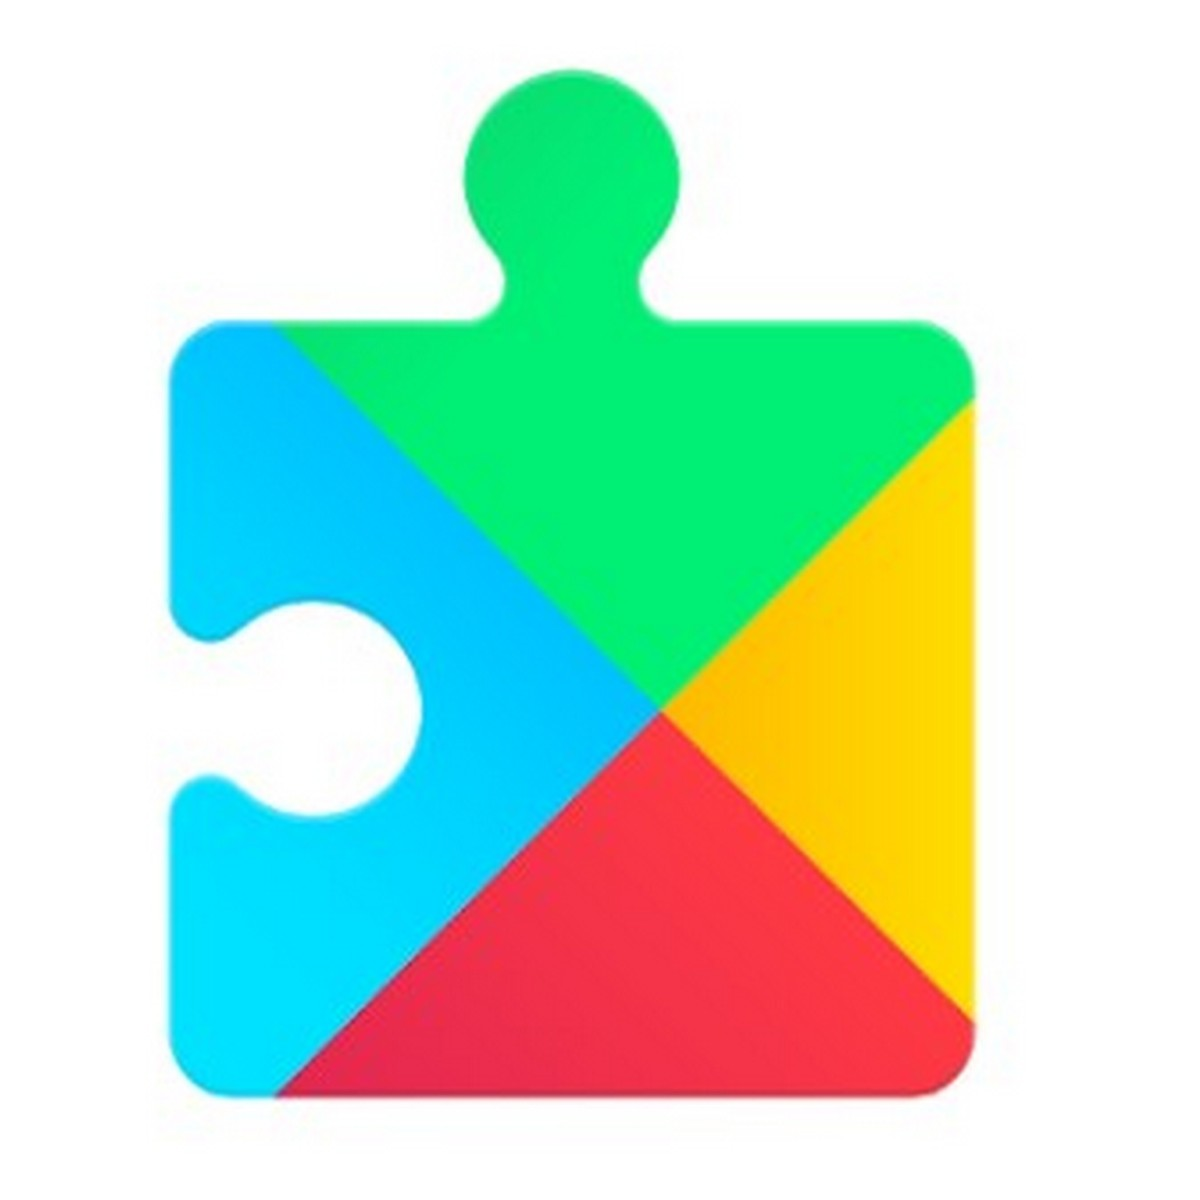 Google Play Services for Android